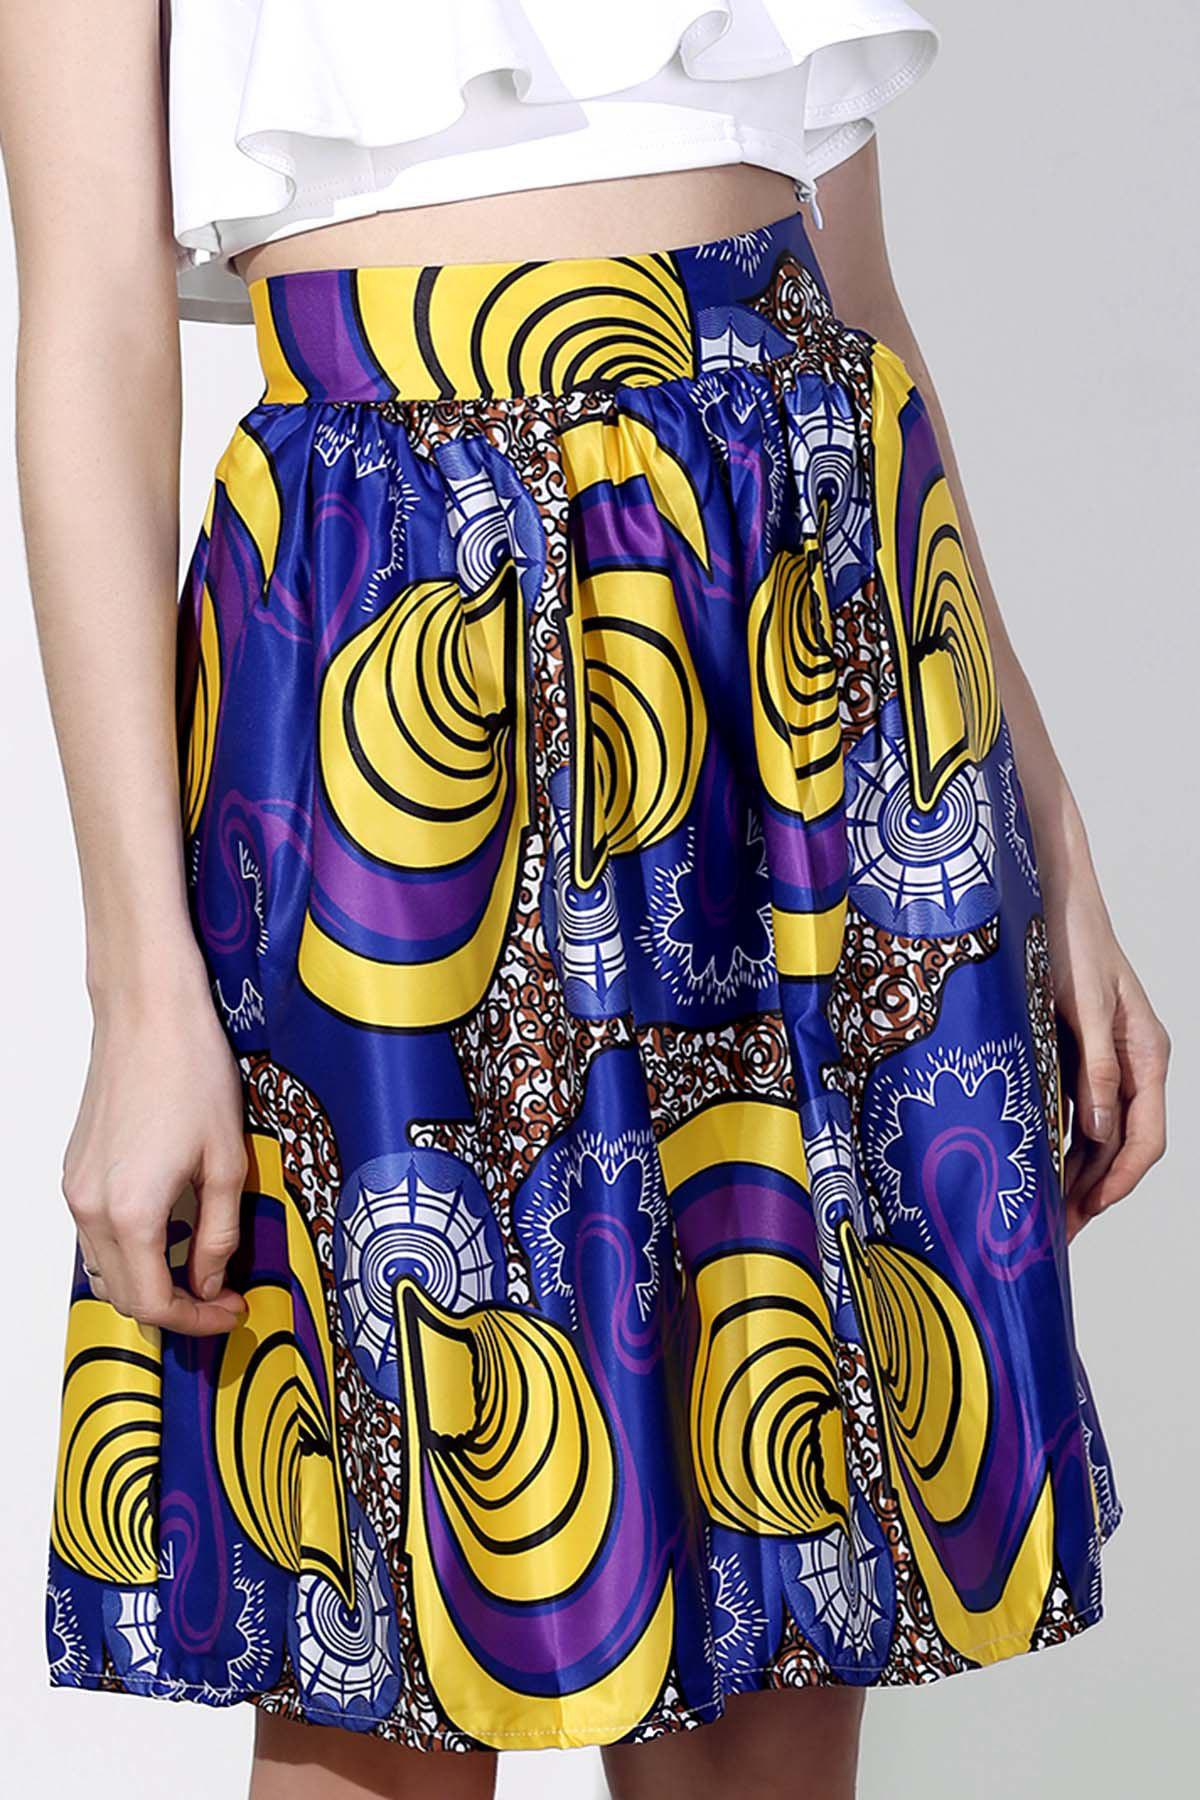 Affordable Vintage High-Waisted Printed Women's Pleated Skirt